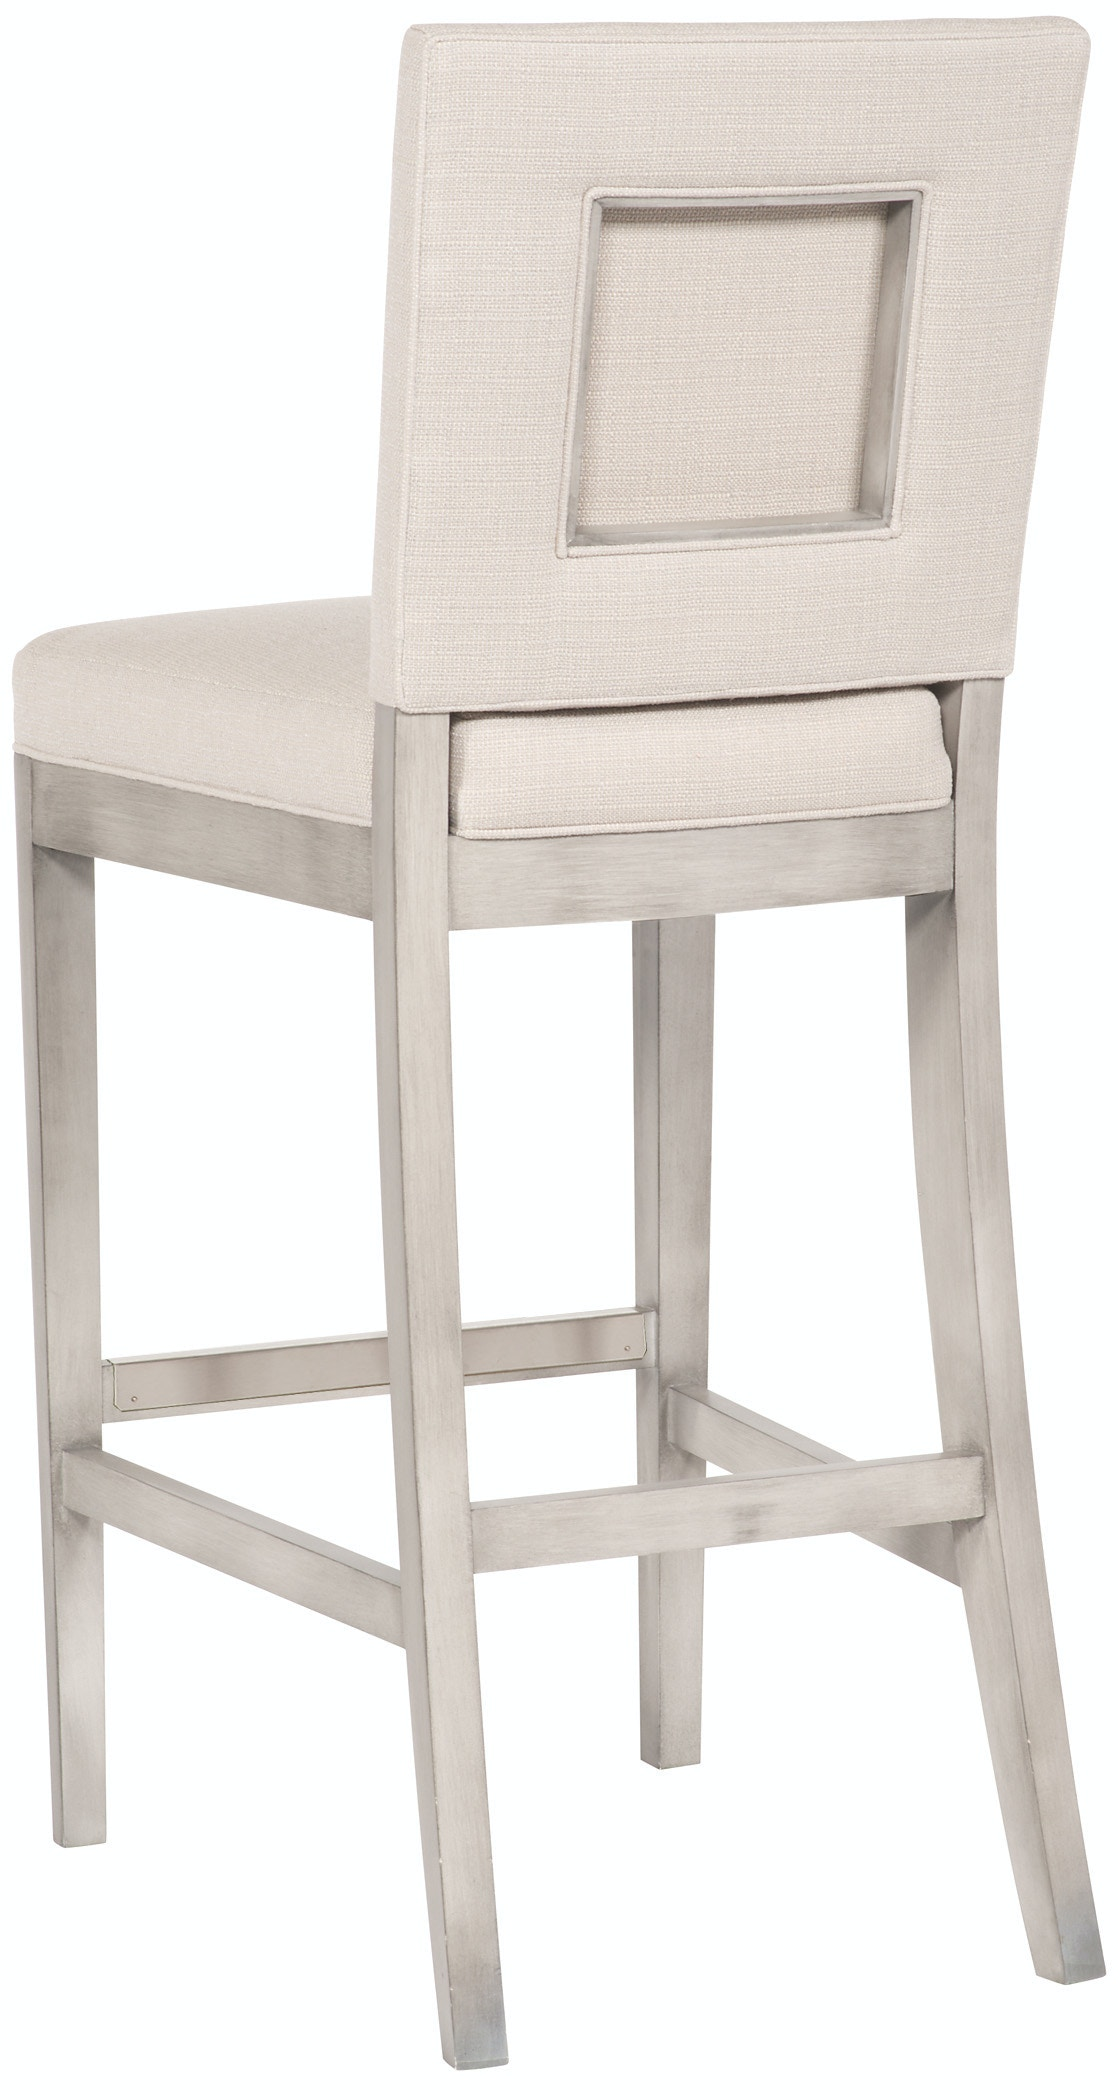 Vanguard Dining Room Juliet Bar Stool V12 Bs Michael